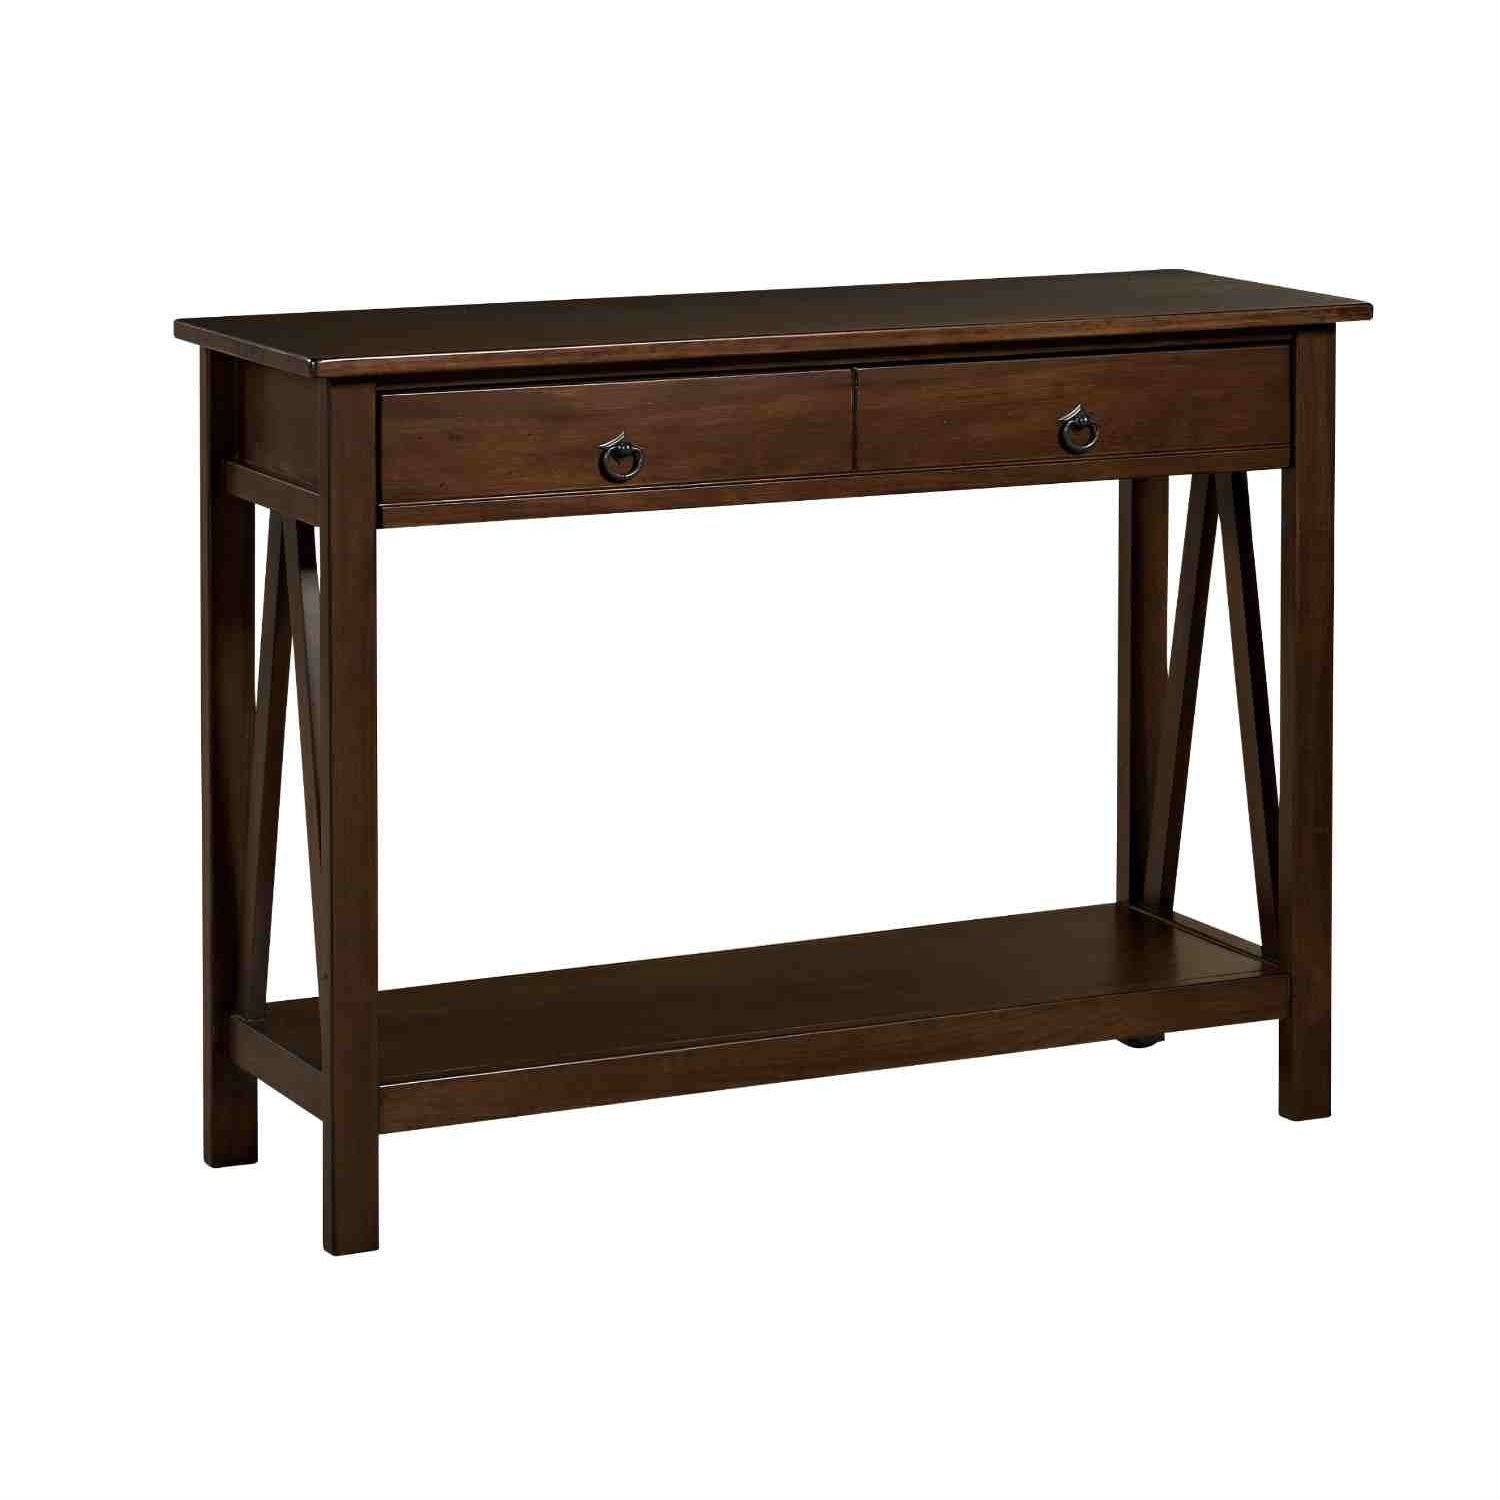 Teschner Console Table.